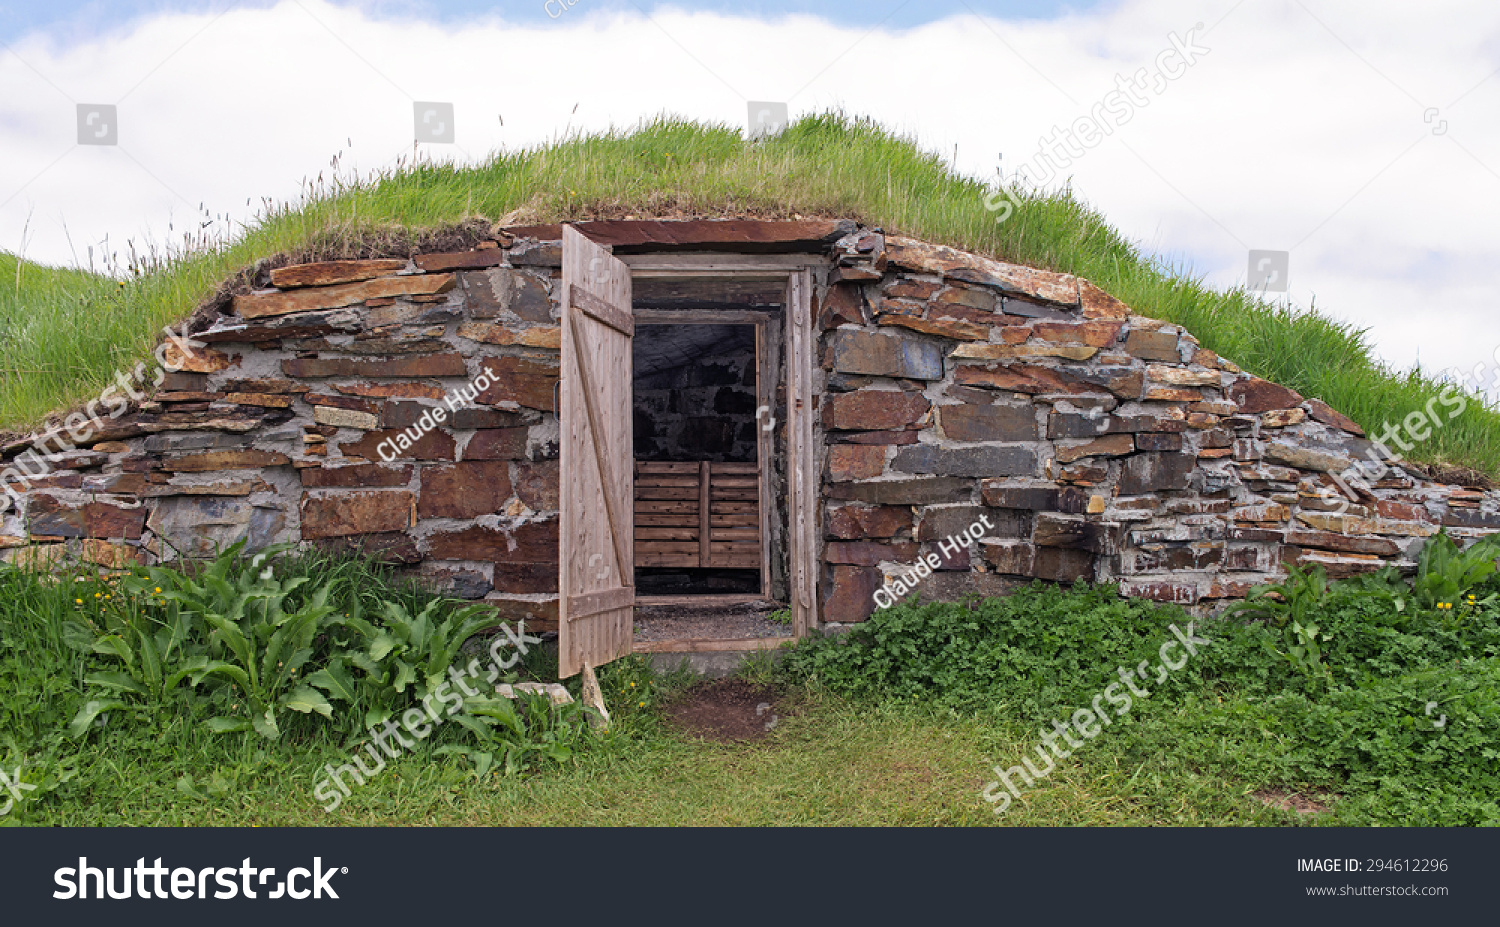 "Root cellar in Elliston who declared itself the ""Root Cellar of the World"", Newfoundland, Canada."